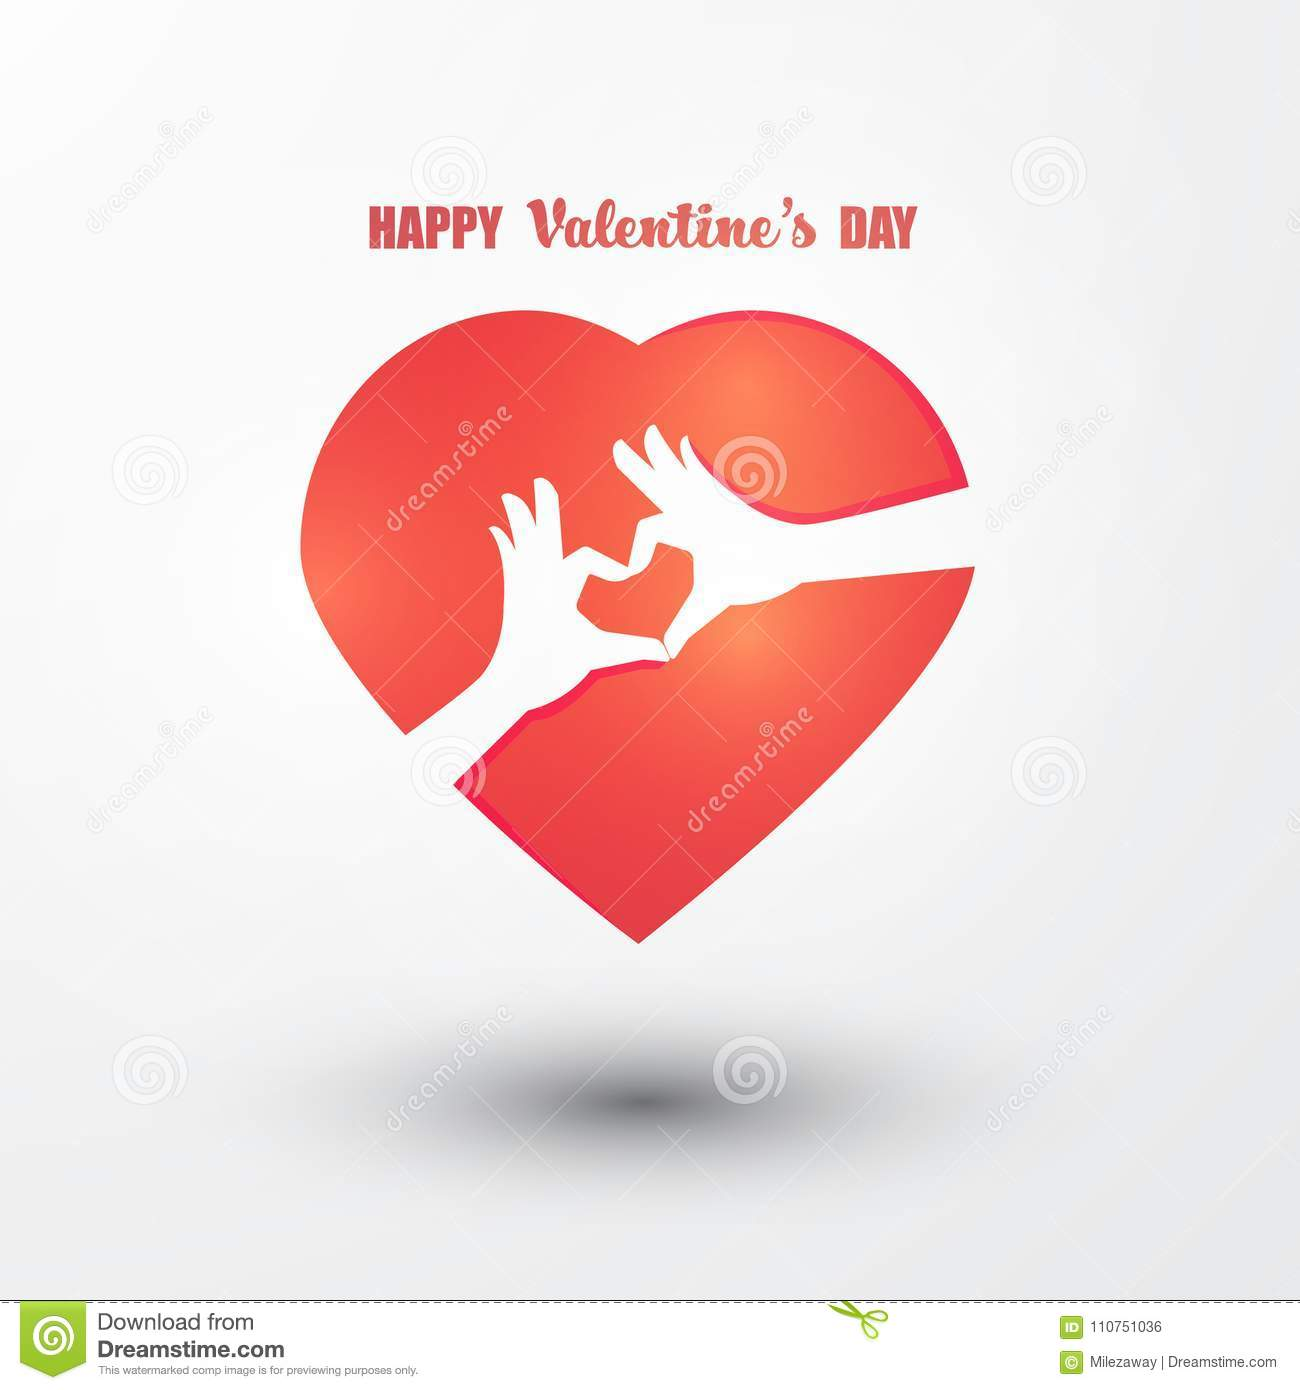 Happy Valentines Day Vector Greetings Card Design With Two Hands